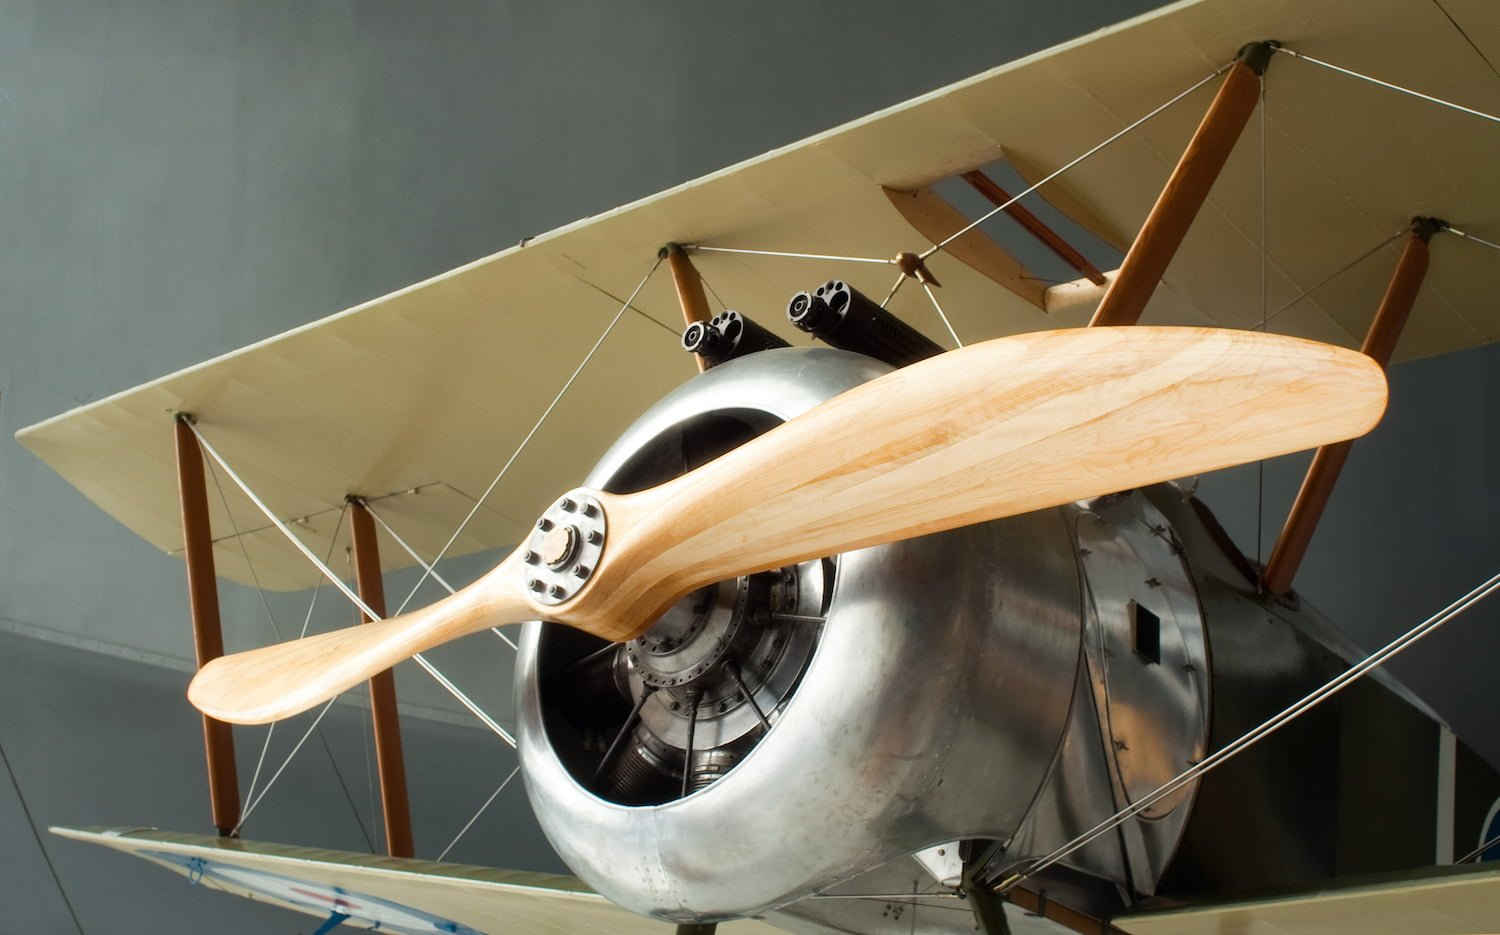 Model of classic plane in a museum